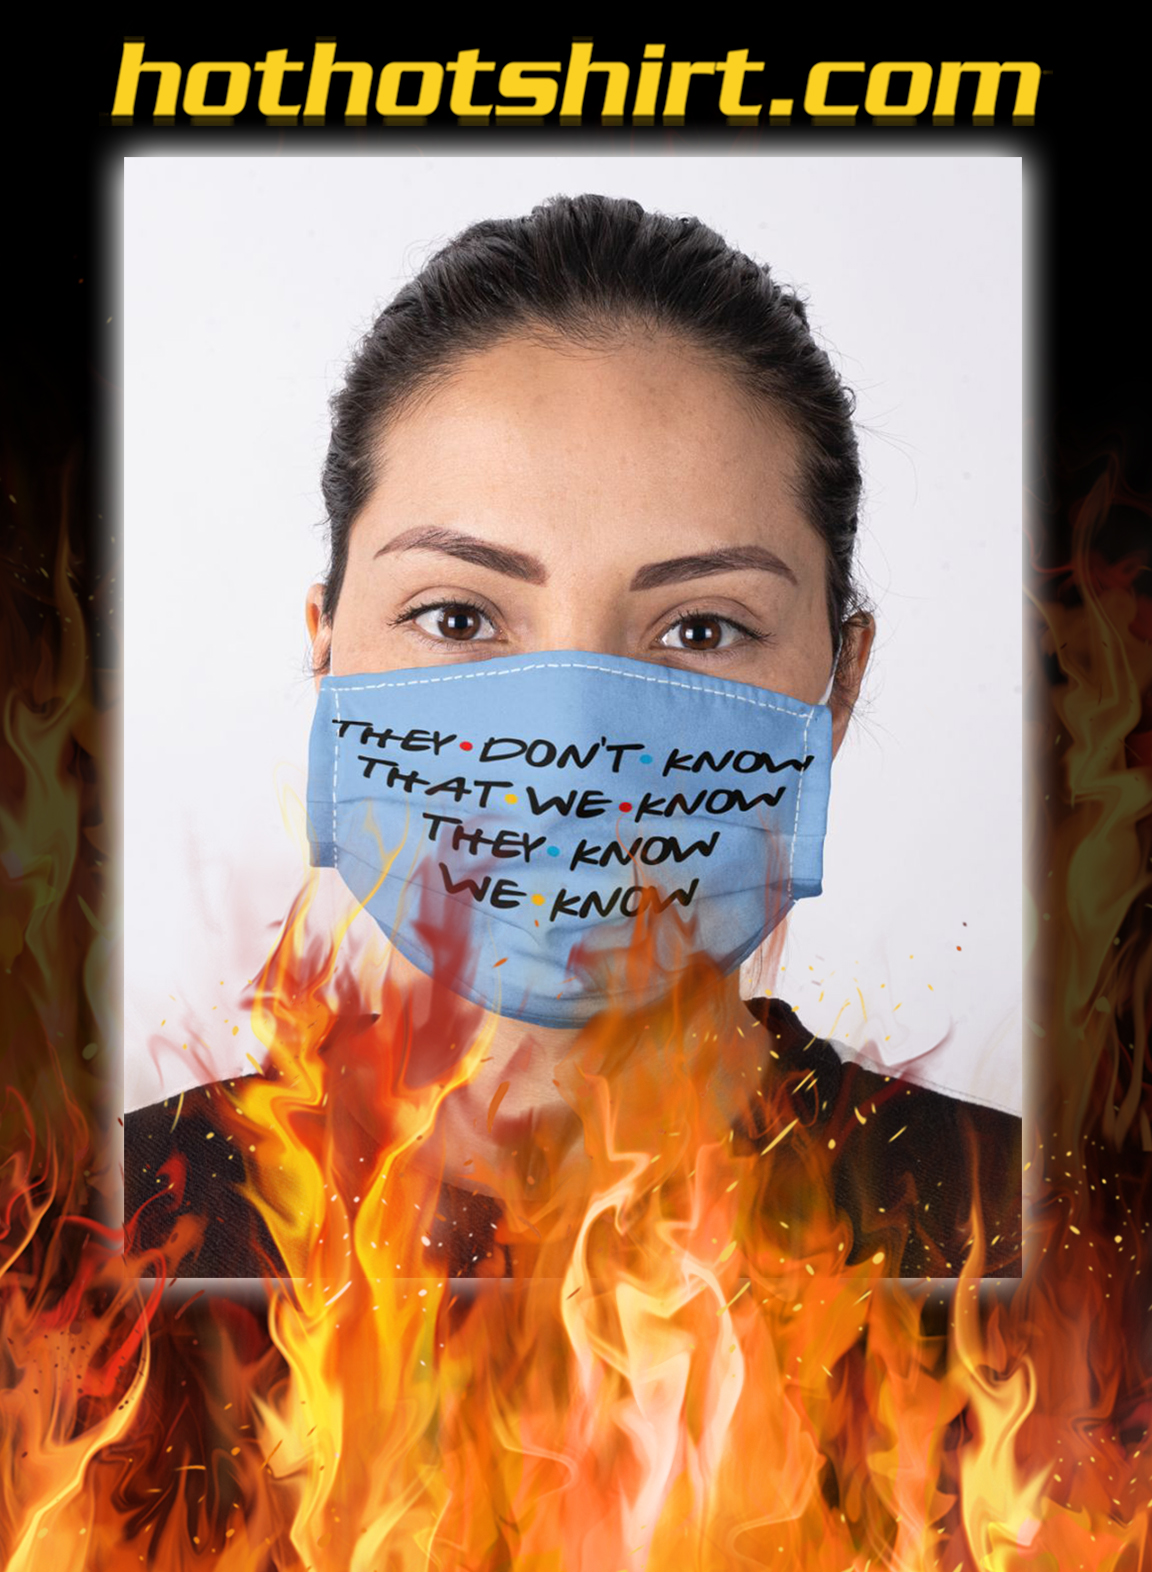 They don't know that we know face mask- pic 1